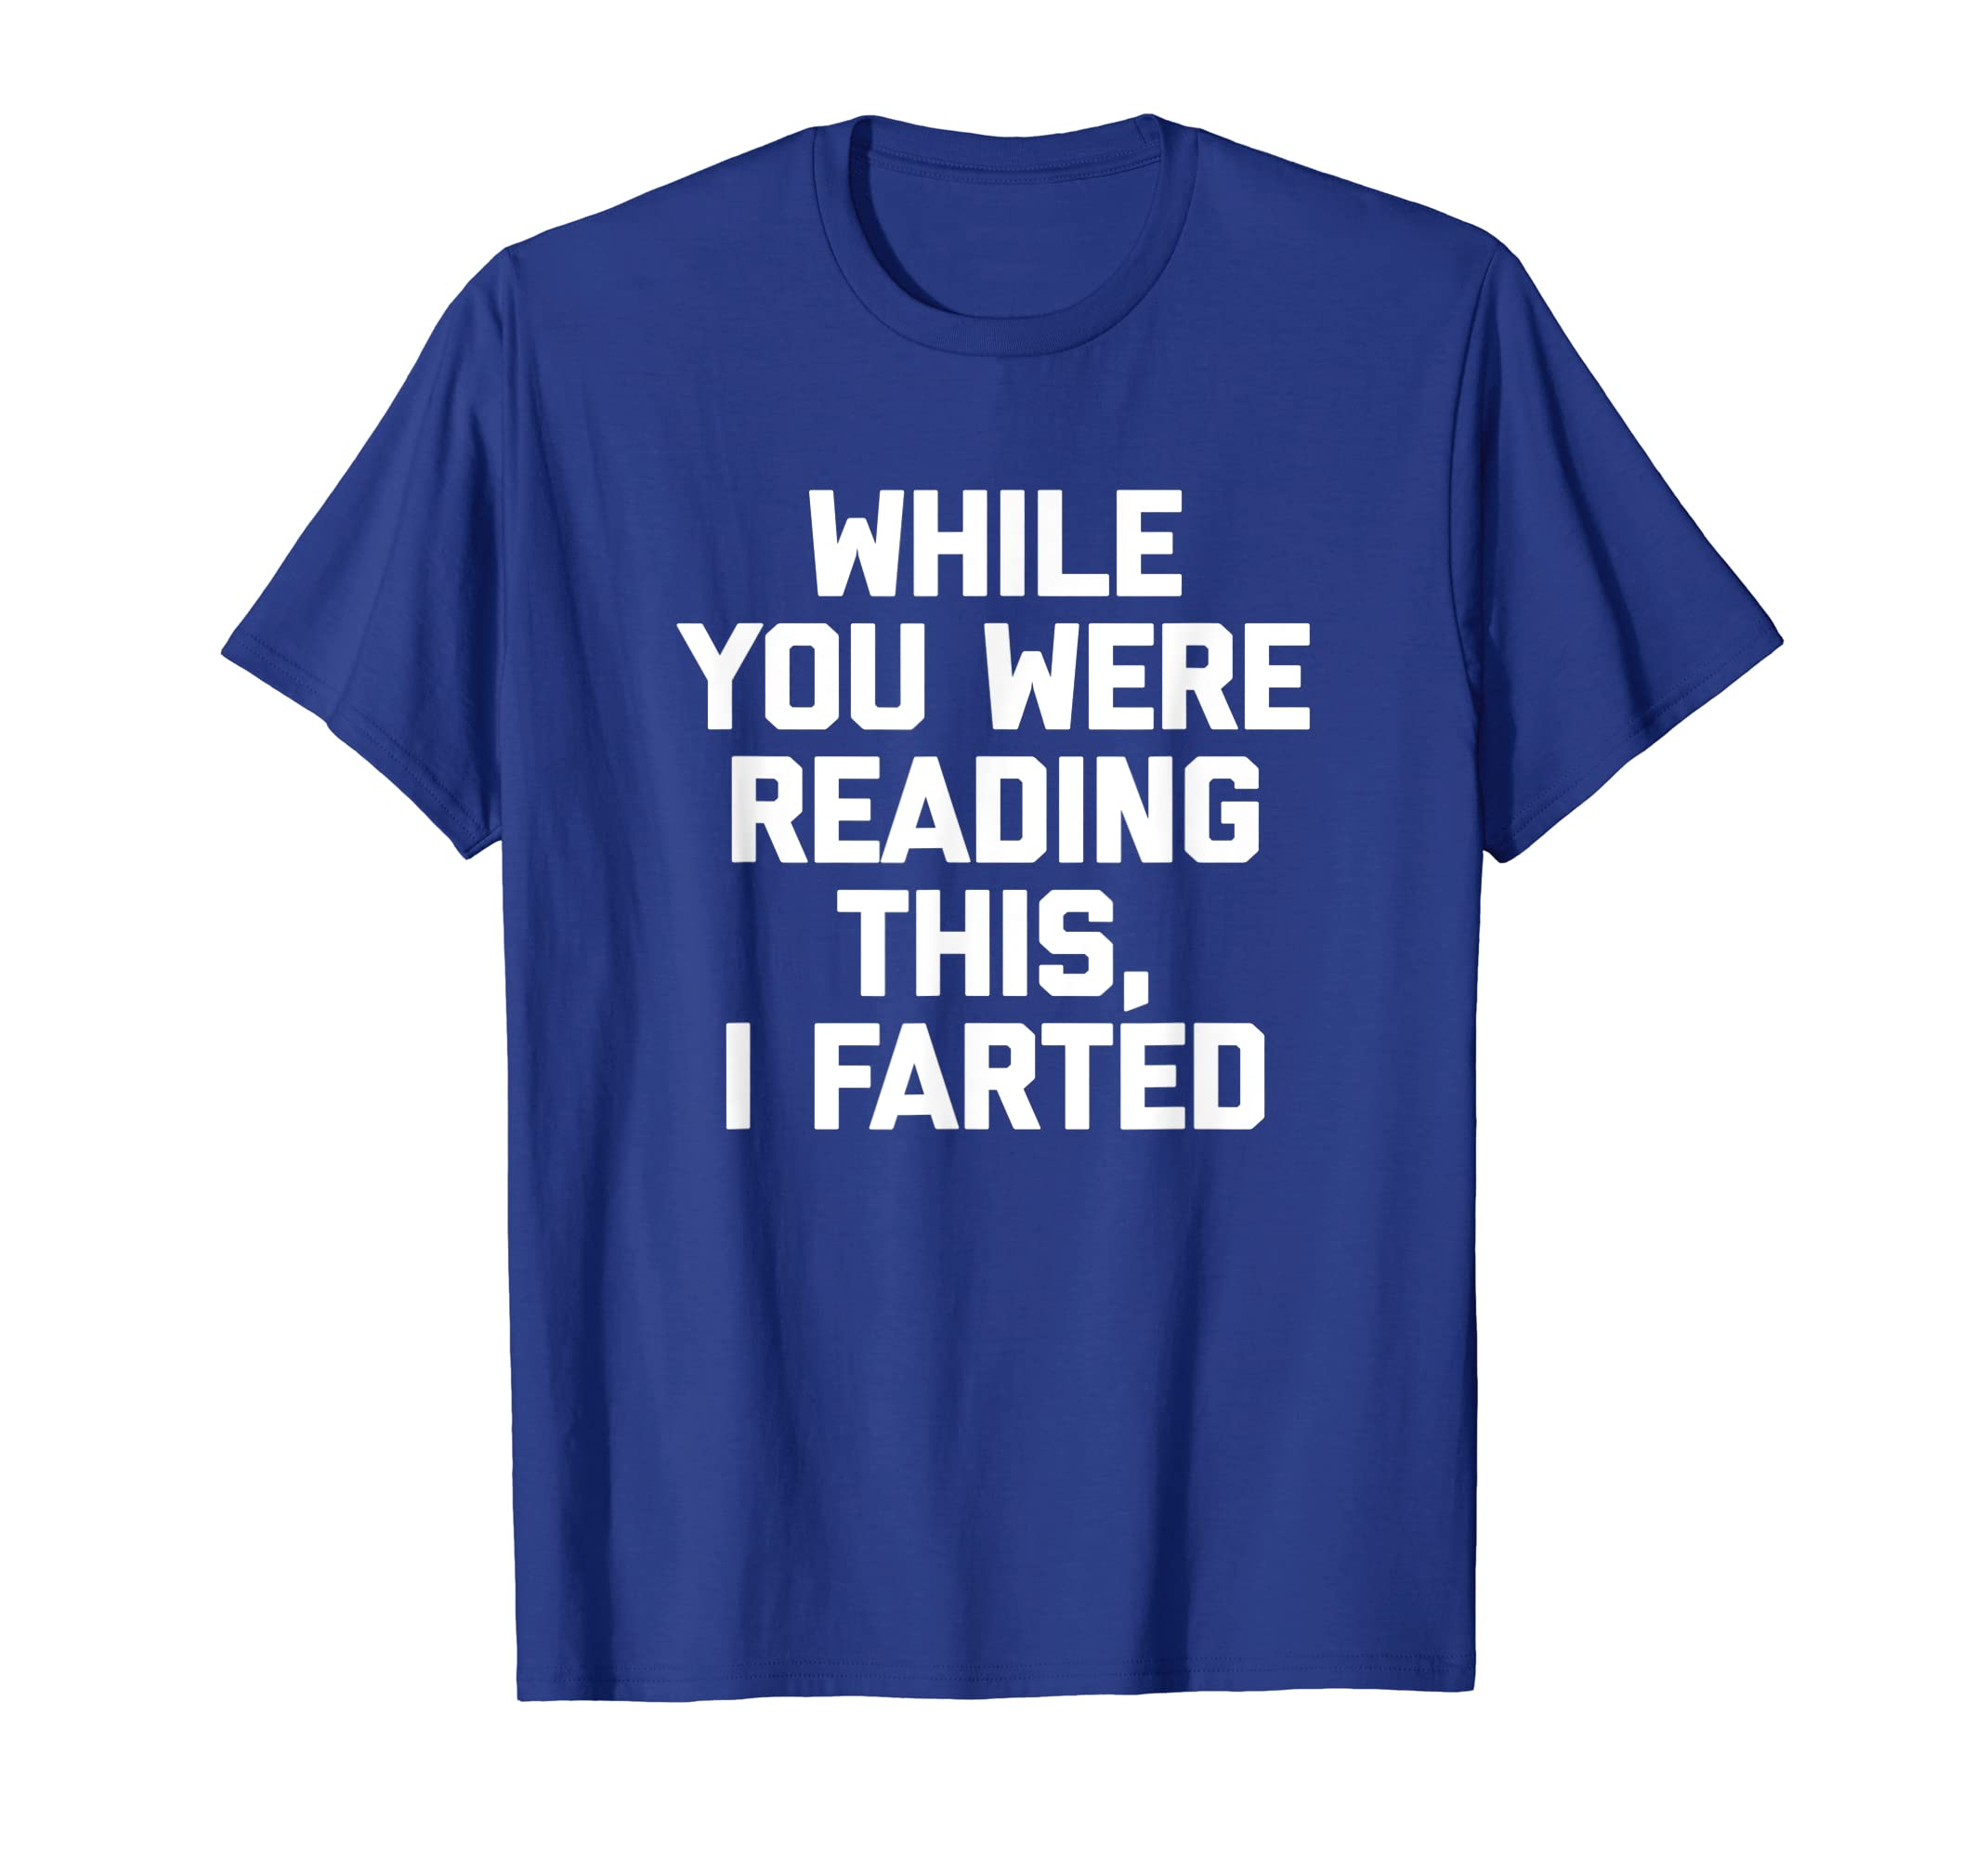 2a986384 Amazon.com: While You Were Reading This, I Farted T-Shirt funny saying:  Clothing